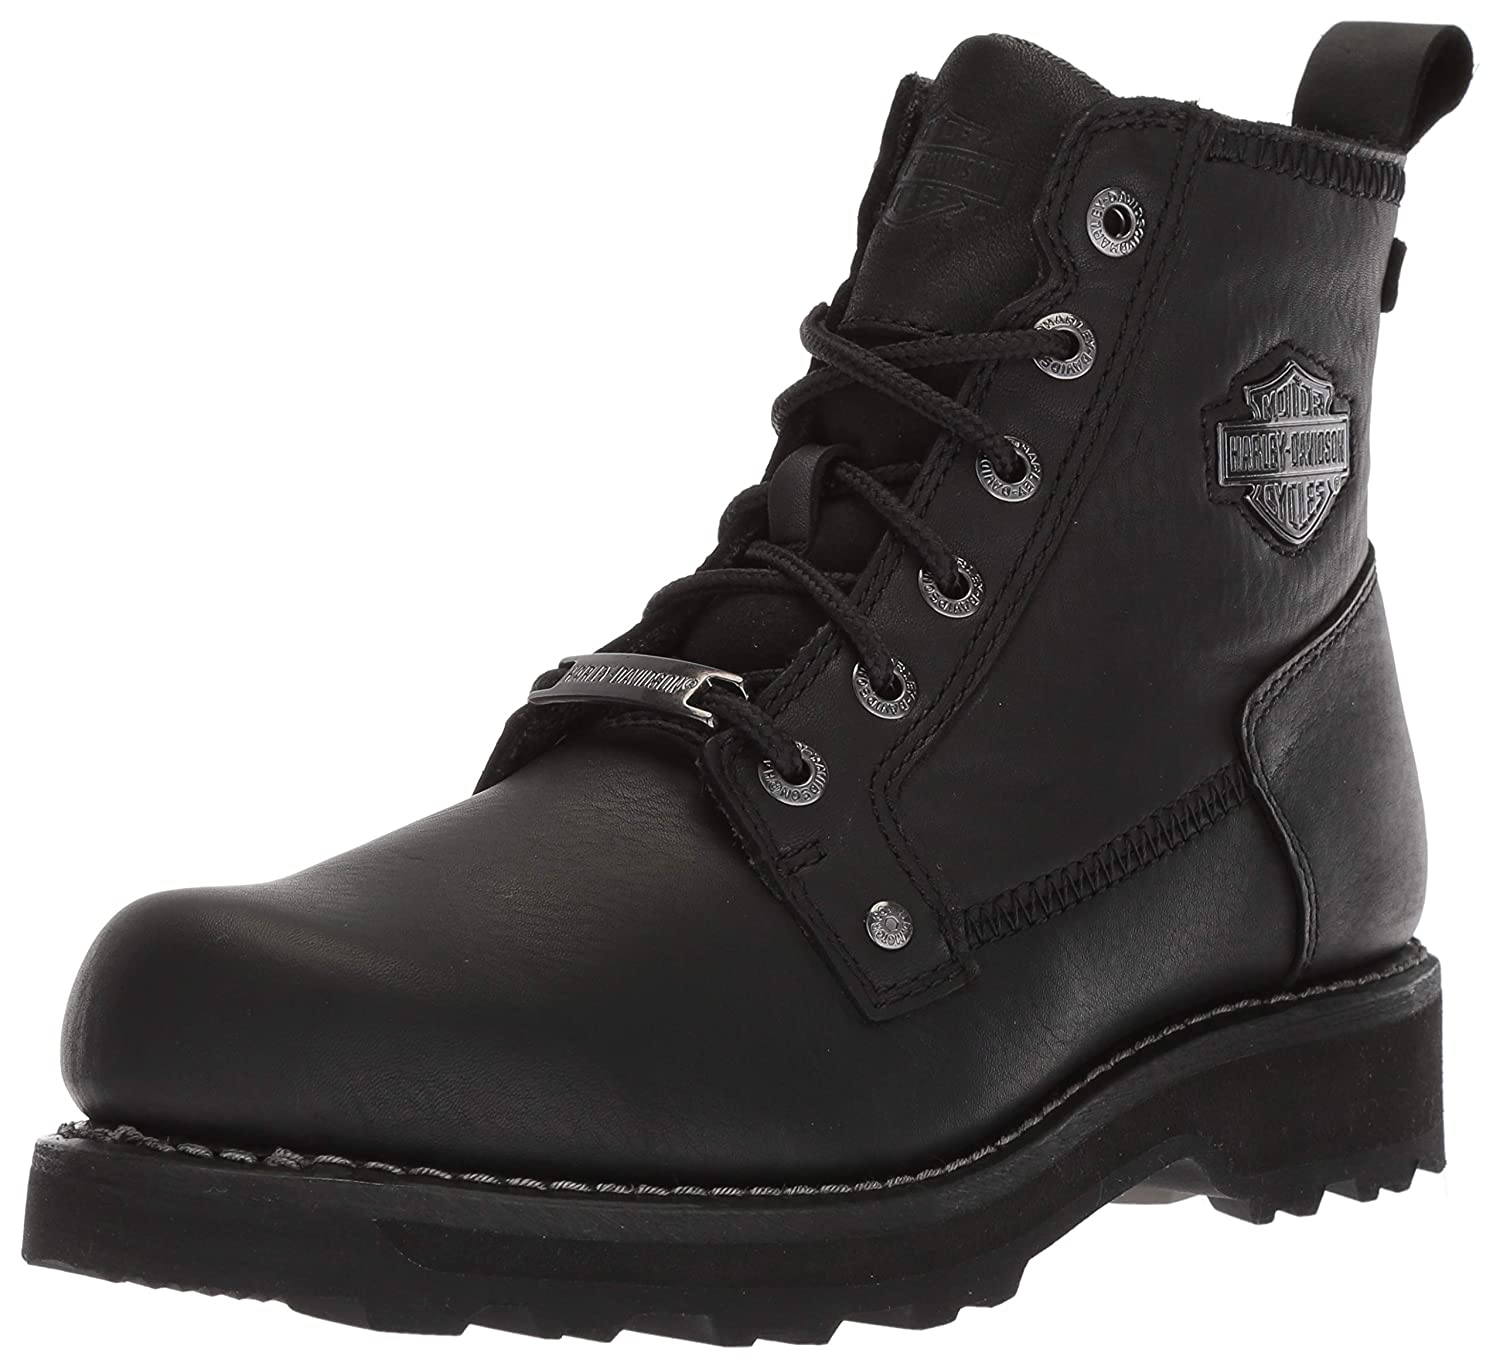 Amazon Com Harley Davidson Men S Griggs Fashion Boot Motorcycle